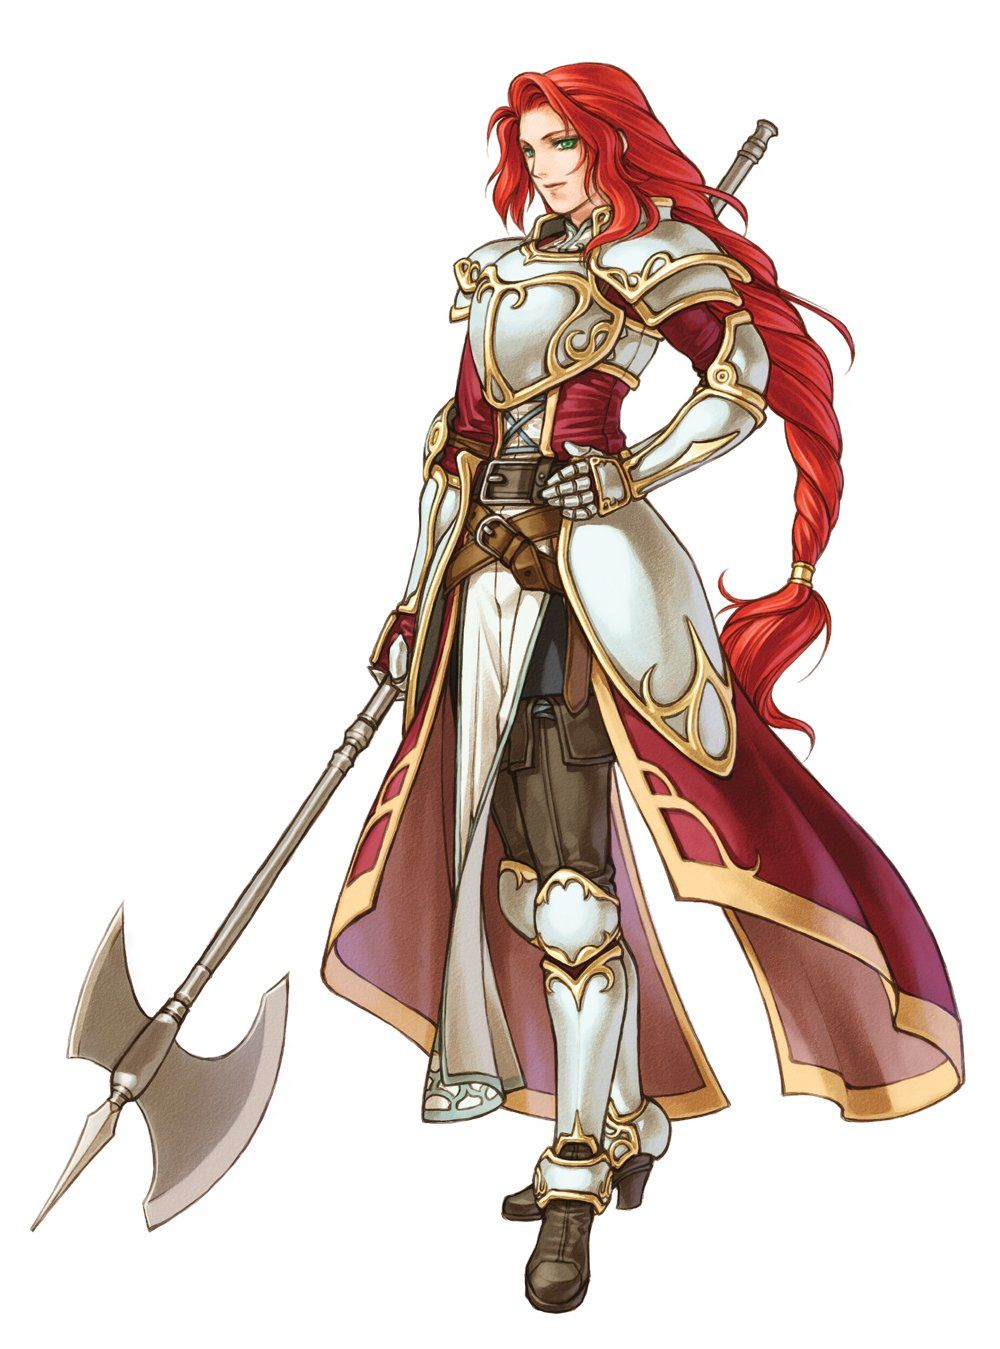 Titania Fire Emblem Female Armor Female Knight Fantasy Armor